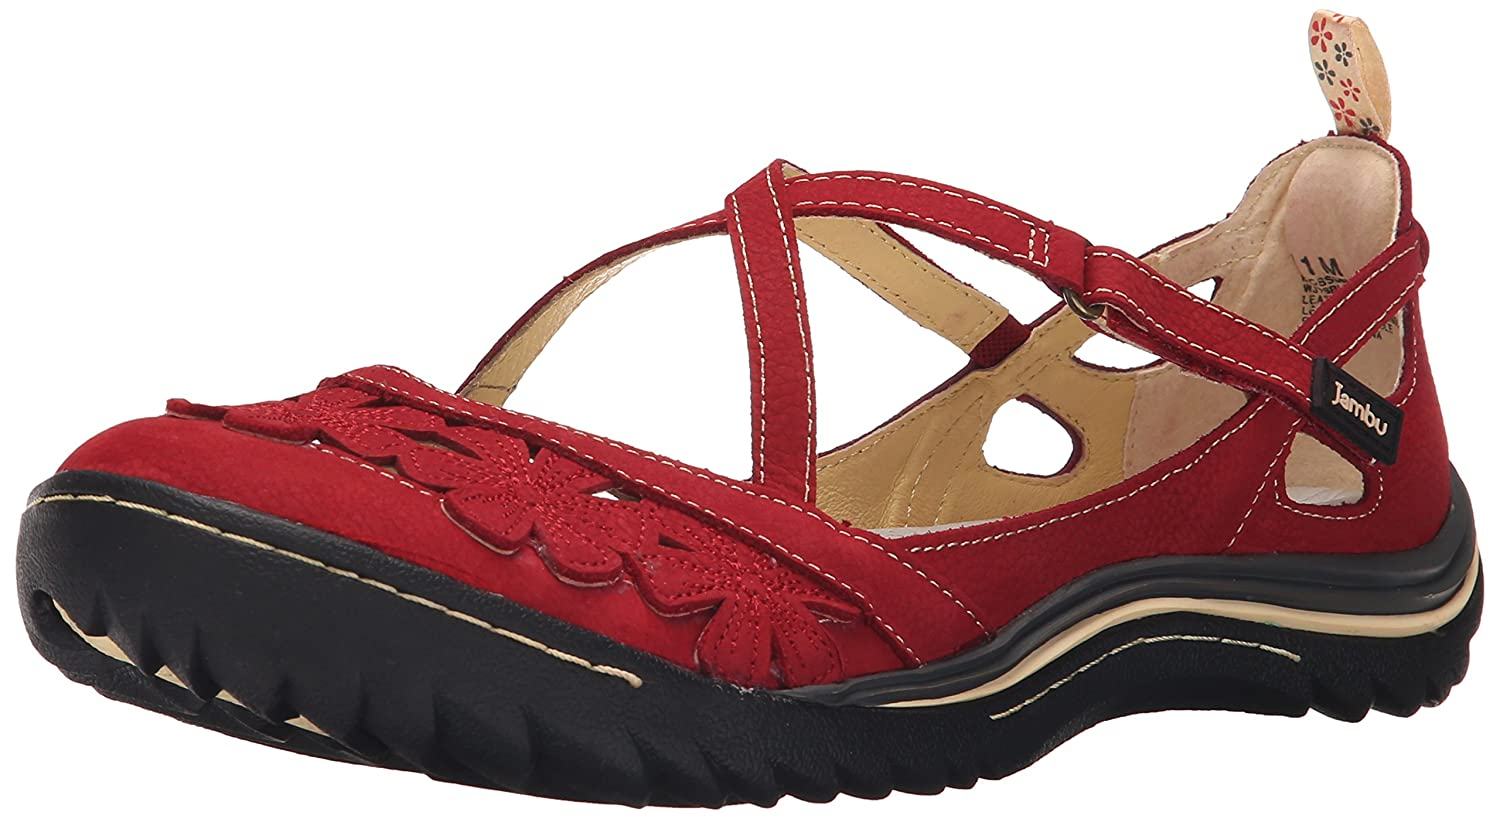 Jambu Women's Blossom Encore Mary Jane Flat B005AFEVNC 8 W US|Red